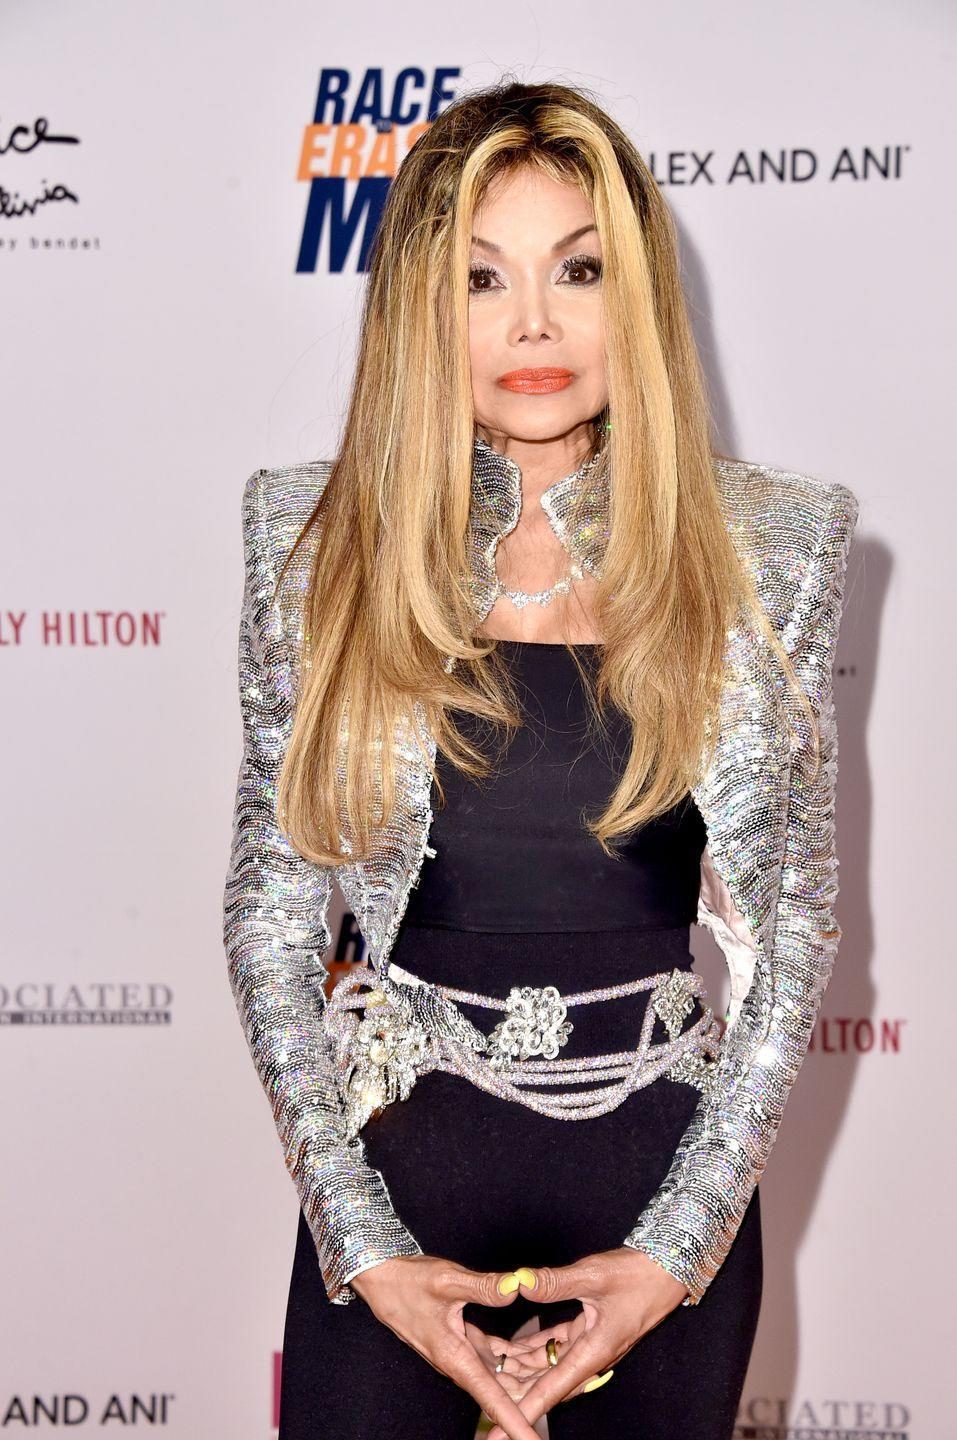 """<p>Shortly after Sacha Baron Cohen filmed a hijinx-filled sit down with La Toya Jackson for his film <em>Bruno</em>, the news of her brother Michael Jackson's death broke. The production company decided to <a href=""""https://www.wsj.com/articles/BL-SEB-2513"""" rel=""""nofollow noopener"""" target=""""_blank"""" data-ylk=""""slk:cut the scene from the movie"""" class=""""link rapid-noclick-resp"""">cut the scene from the movie</a> due to the family's tragic loss. </p>"""